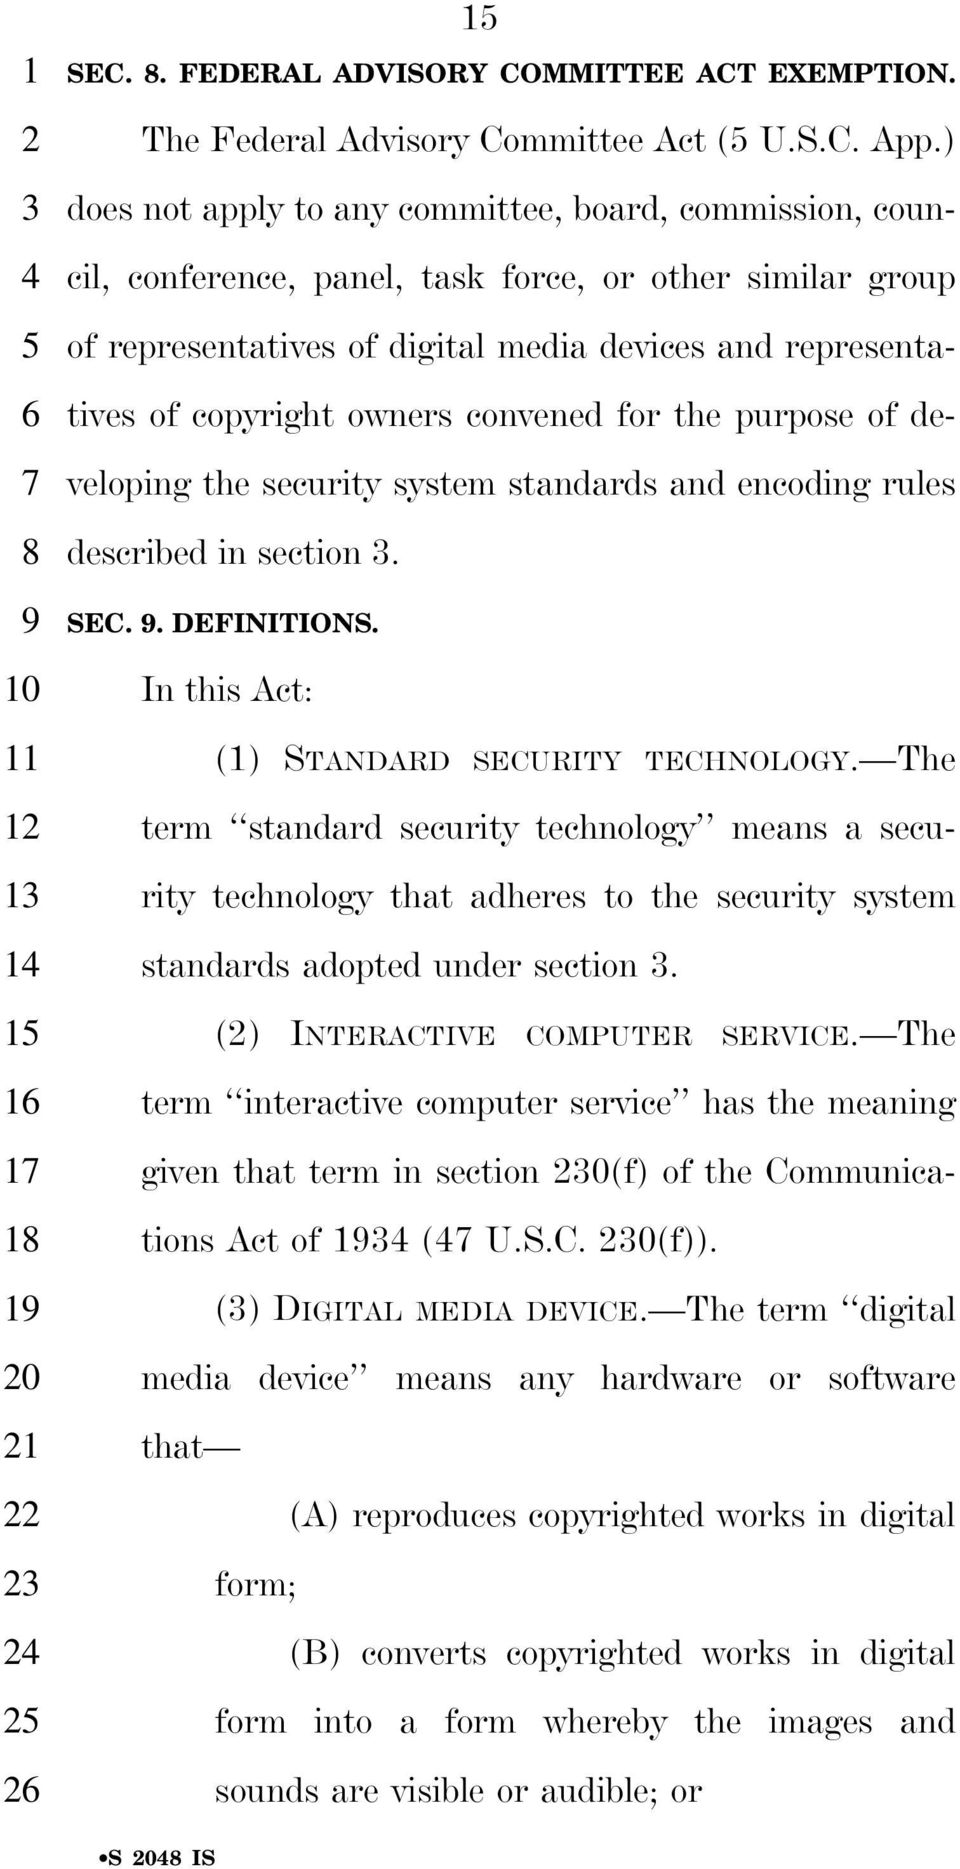 owners convened for the purpose of developing the security system standards and encoding rules described in section. SEC.. DEFINITIONS. In this Act: (1) STANDARD SECURITY TECHNOLOGY.